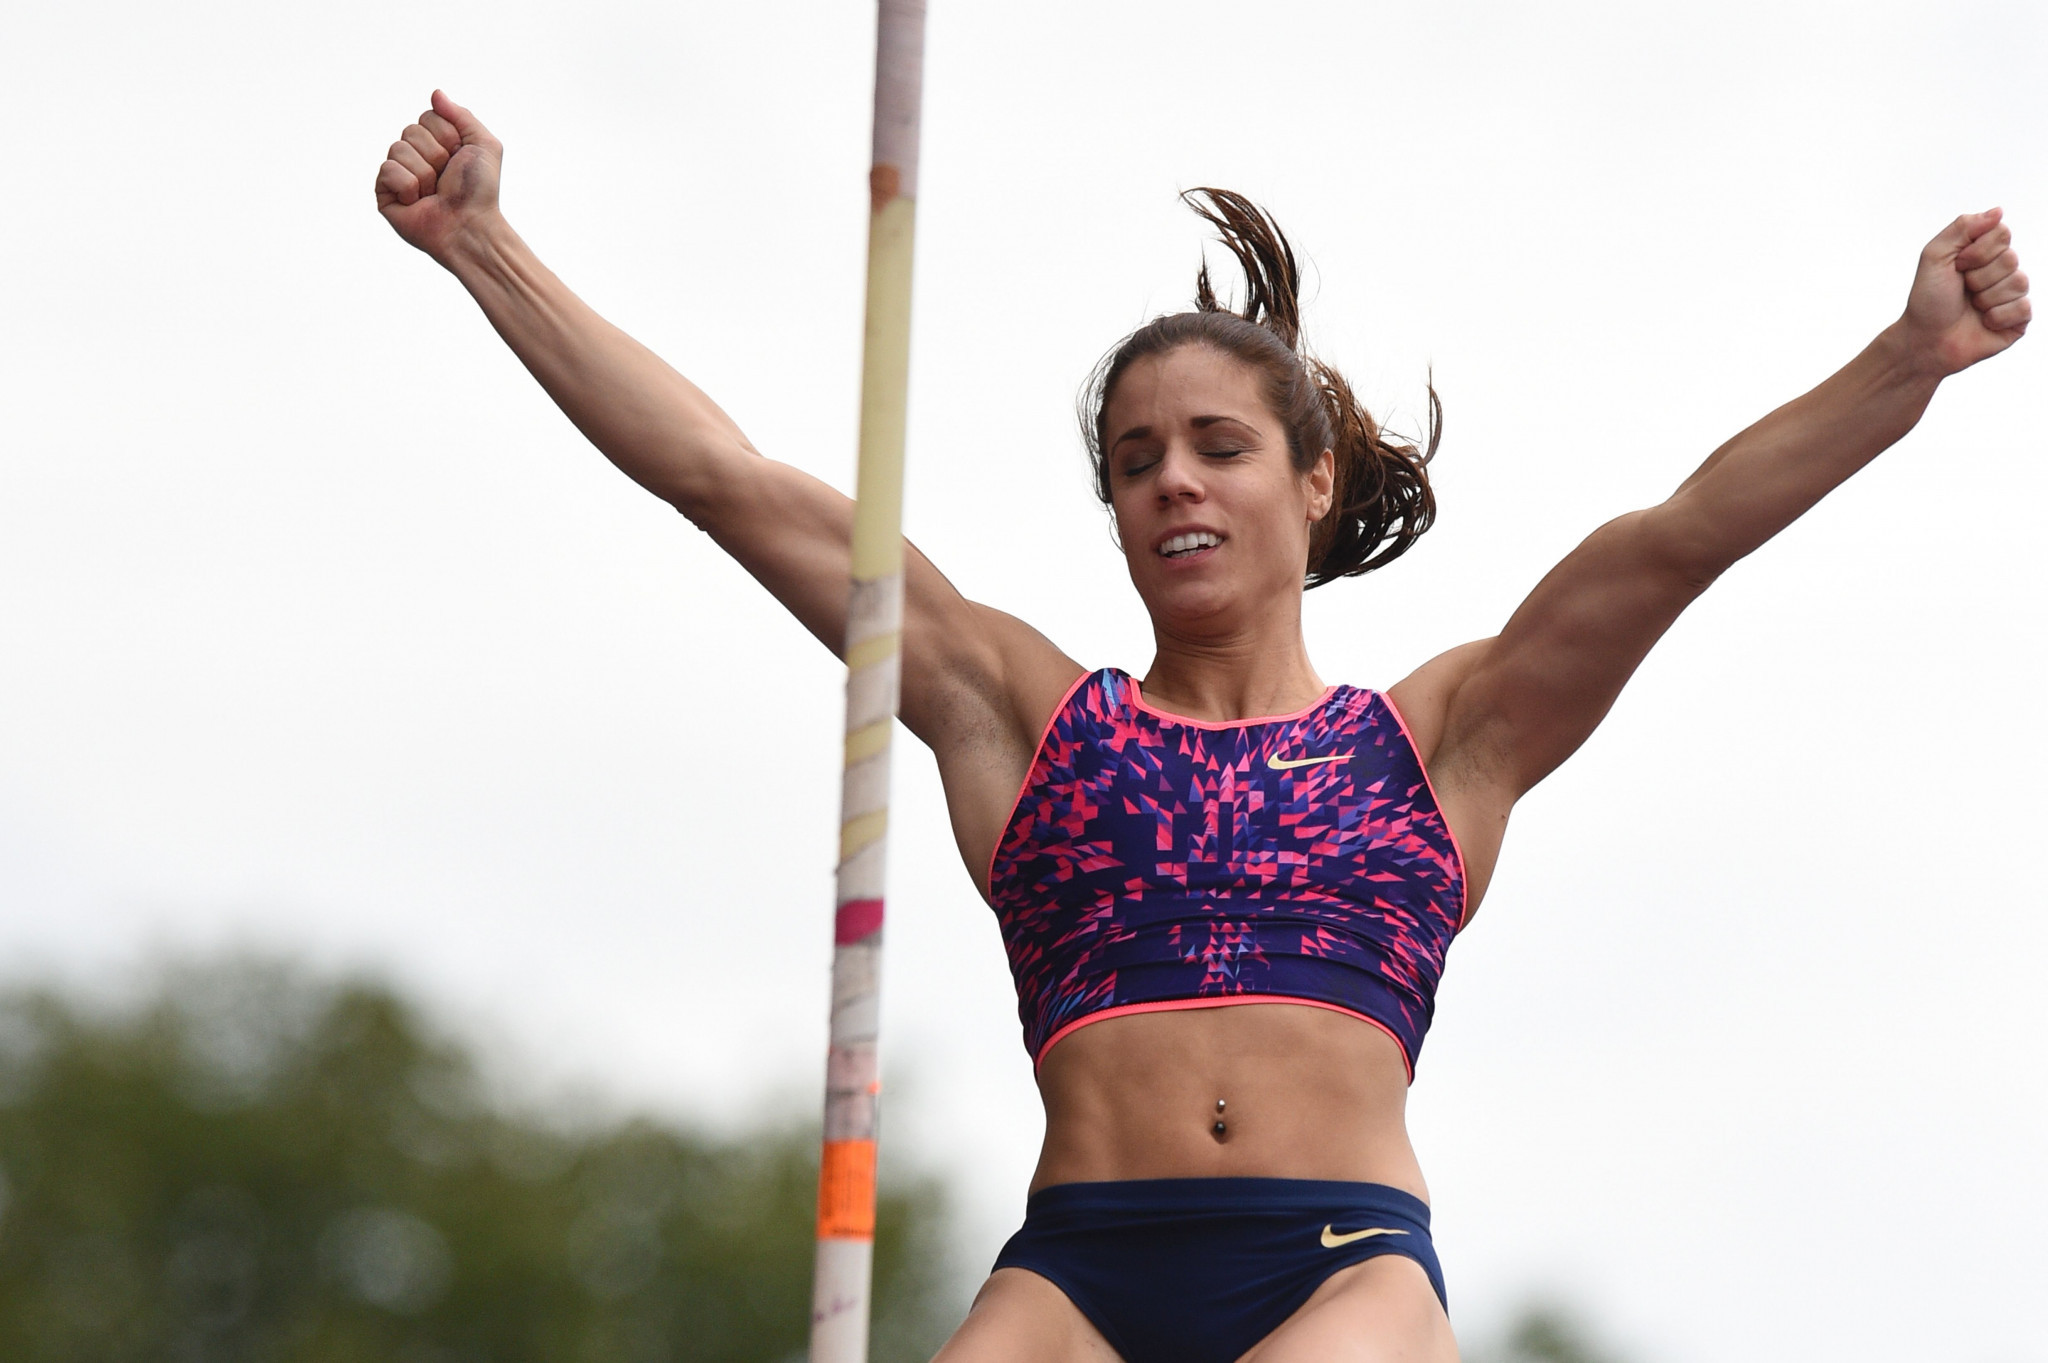 Greece's Ekaterini Stefanidi, who was voted European Athlete of the Year last month, will be hoping to receive the world title in Monaco  ©Getty Images